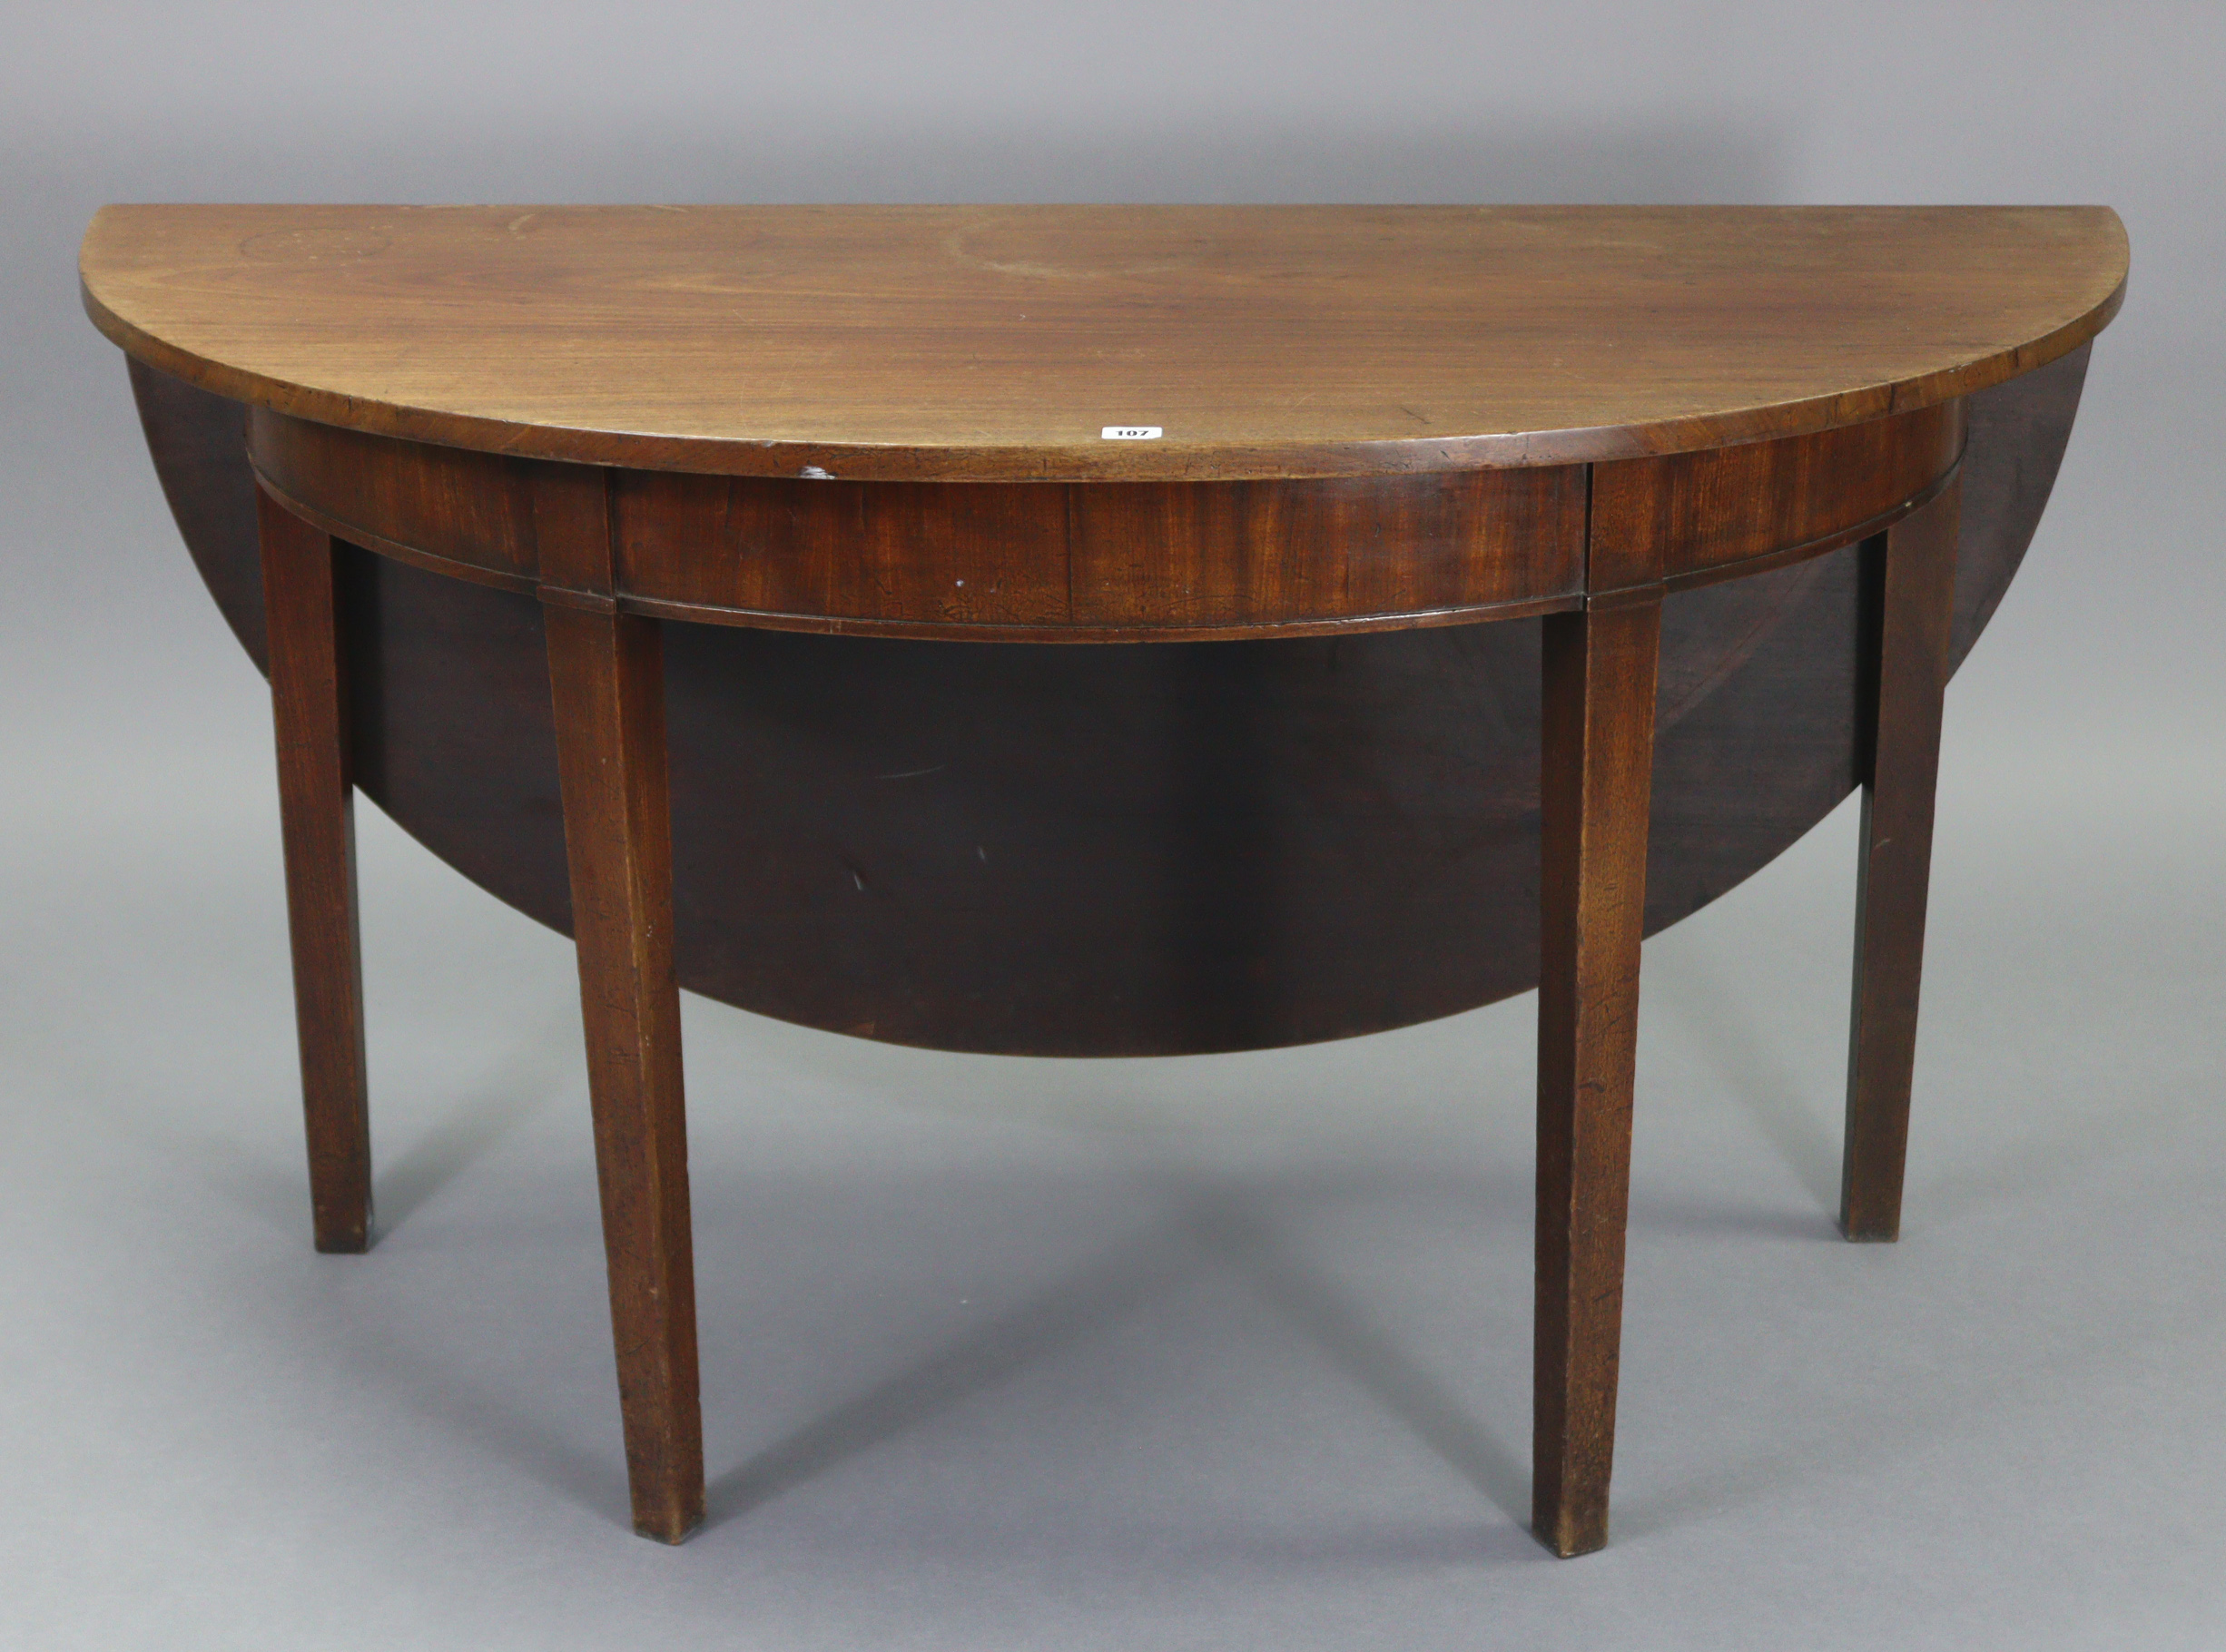 An early 20th century mahogany circular single-drop leaf dining table on four square tapered legs,